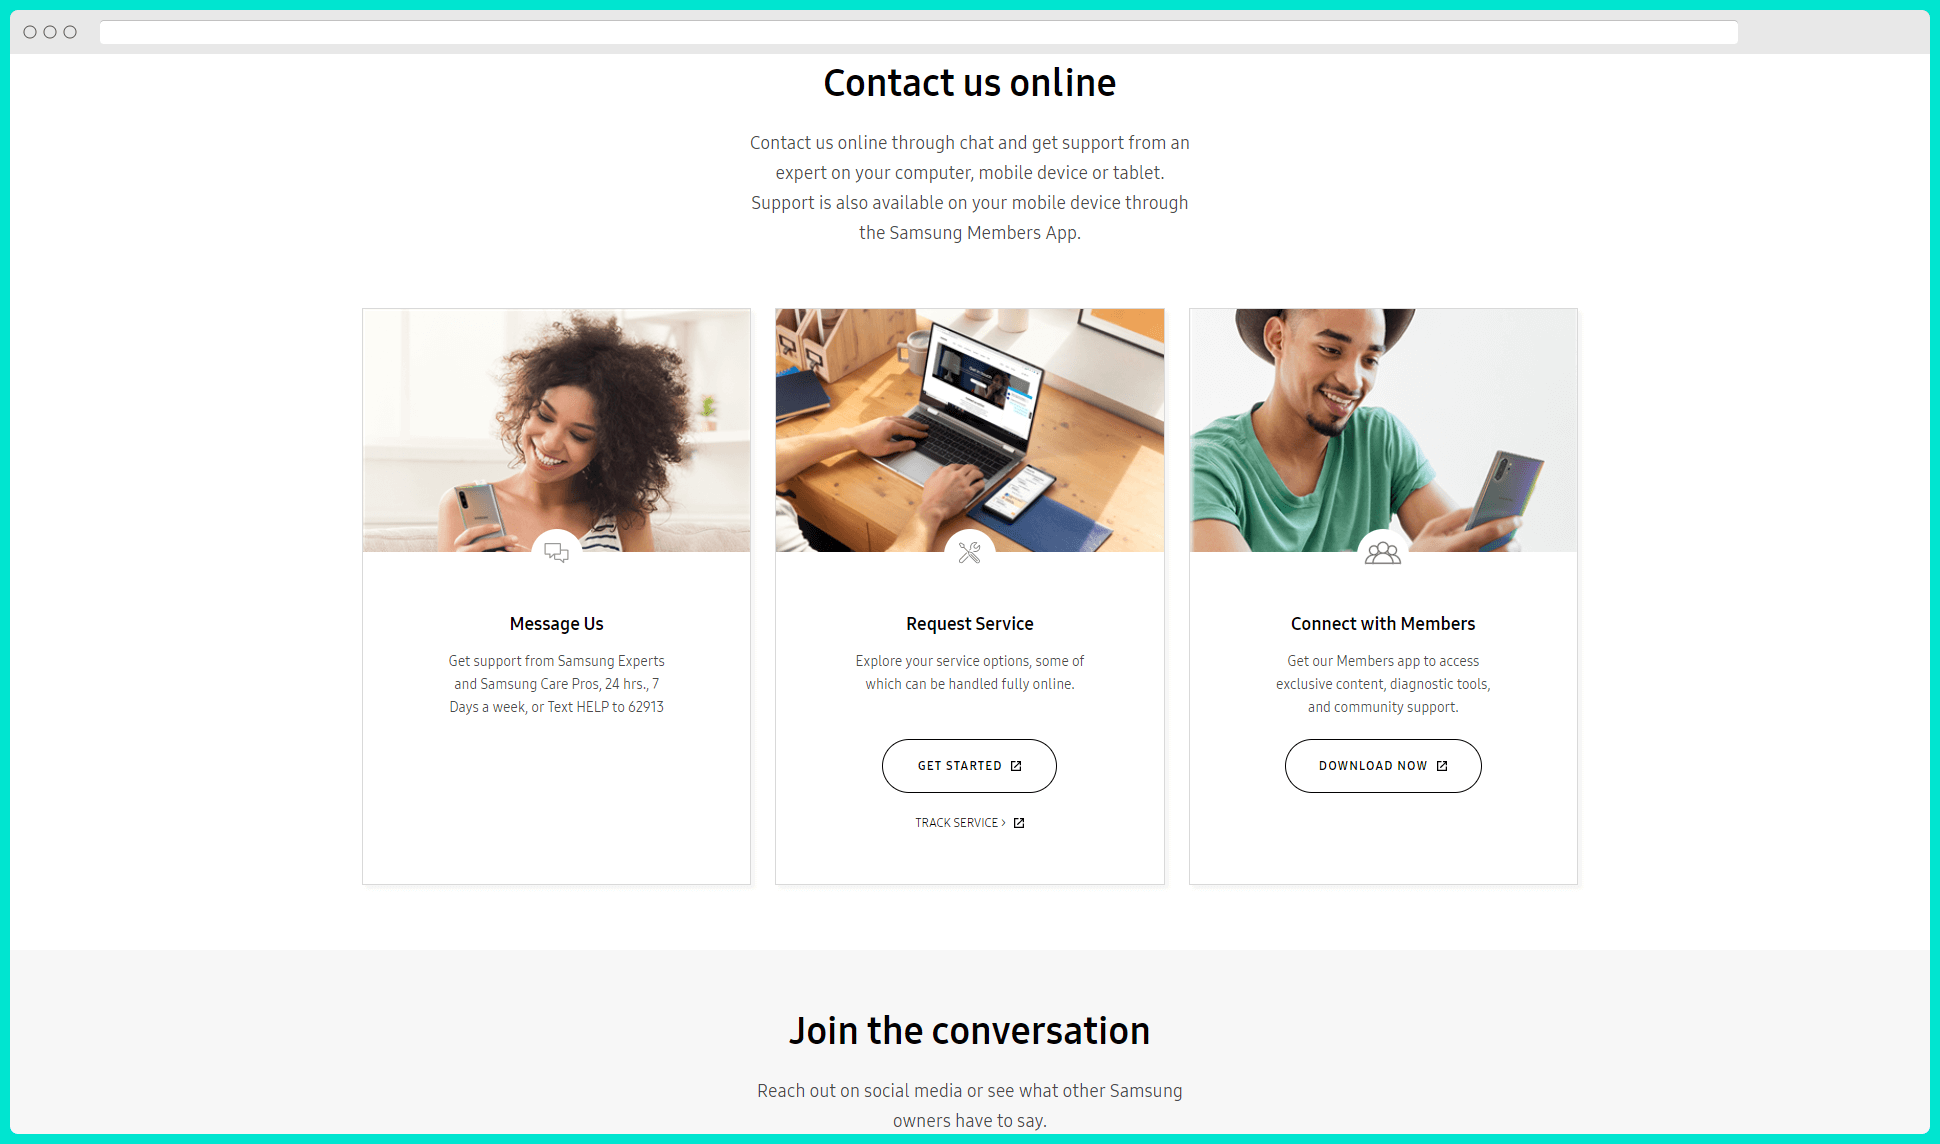 samsung contact page seo example ask the community CTAs